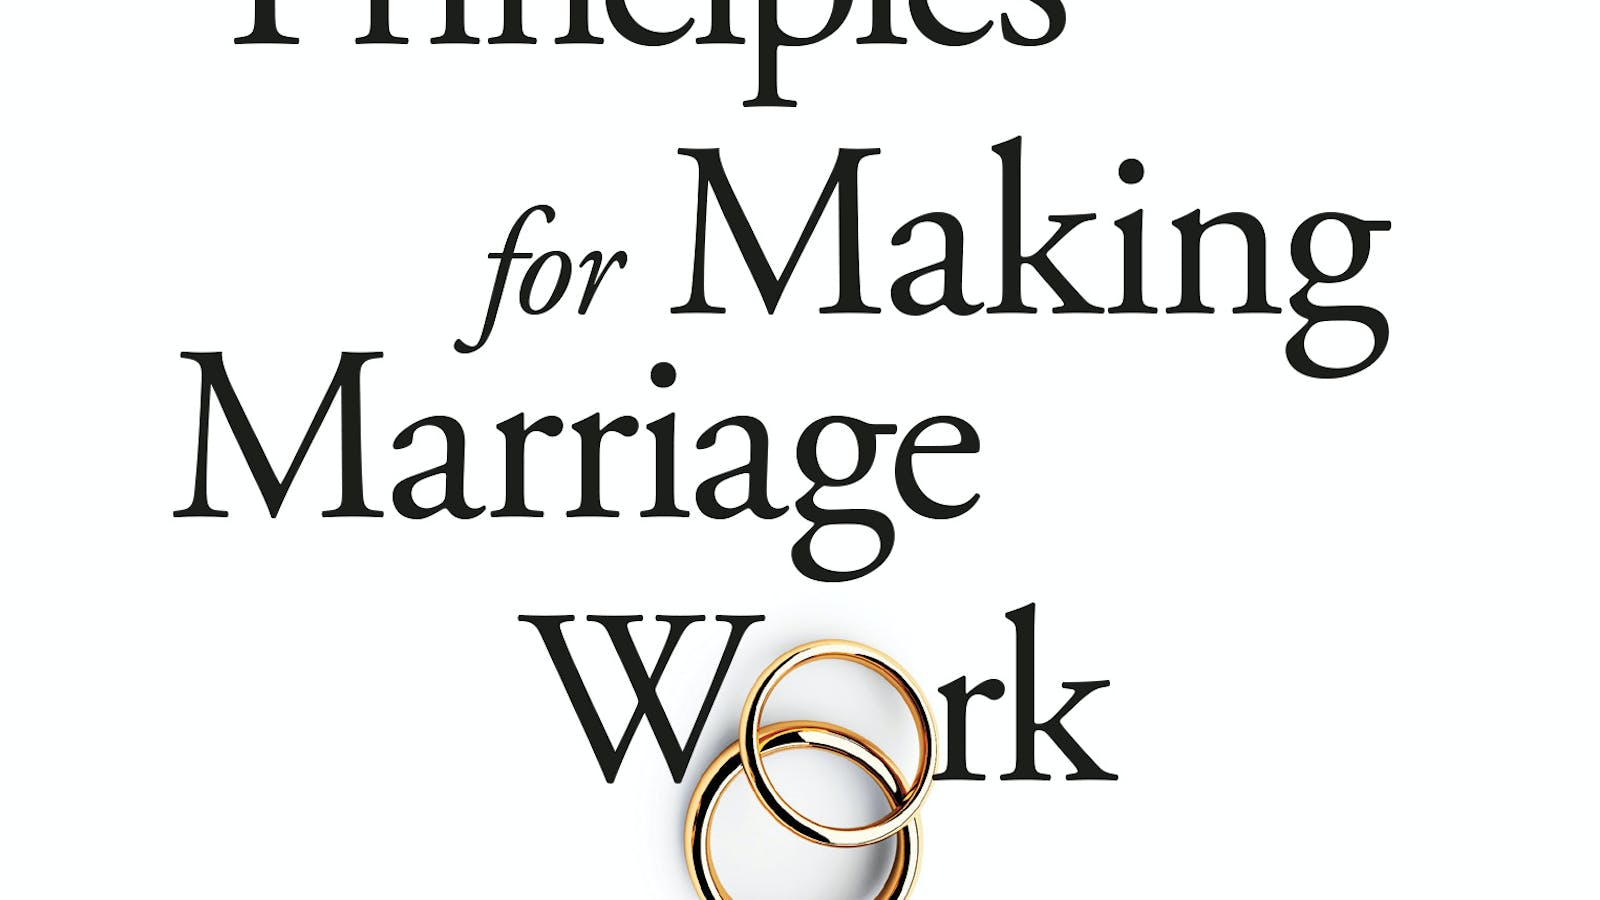 The Seven Principles For Making Marriage Work by John